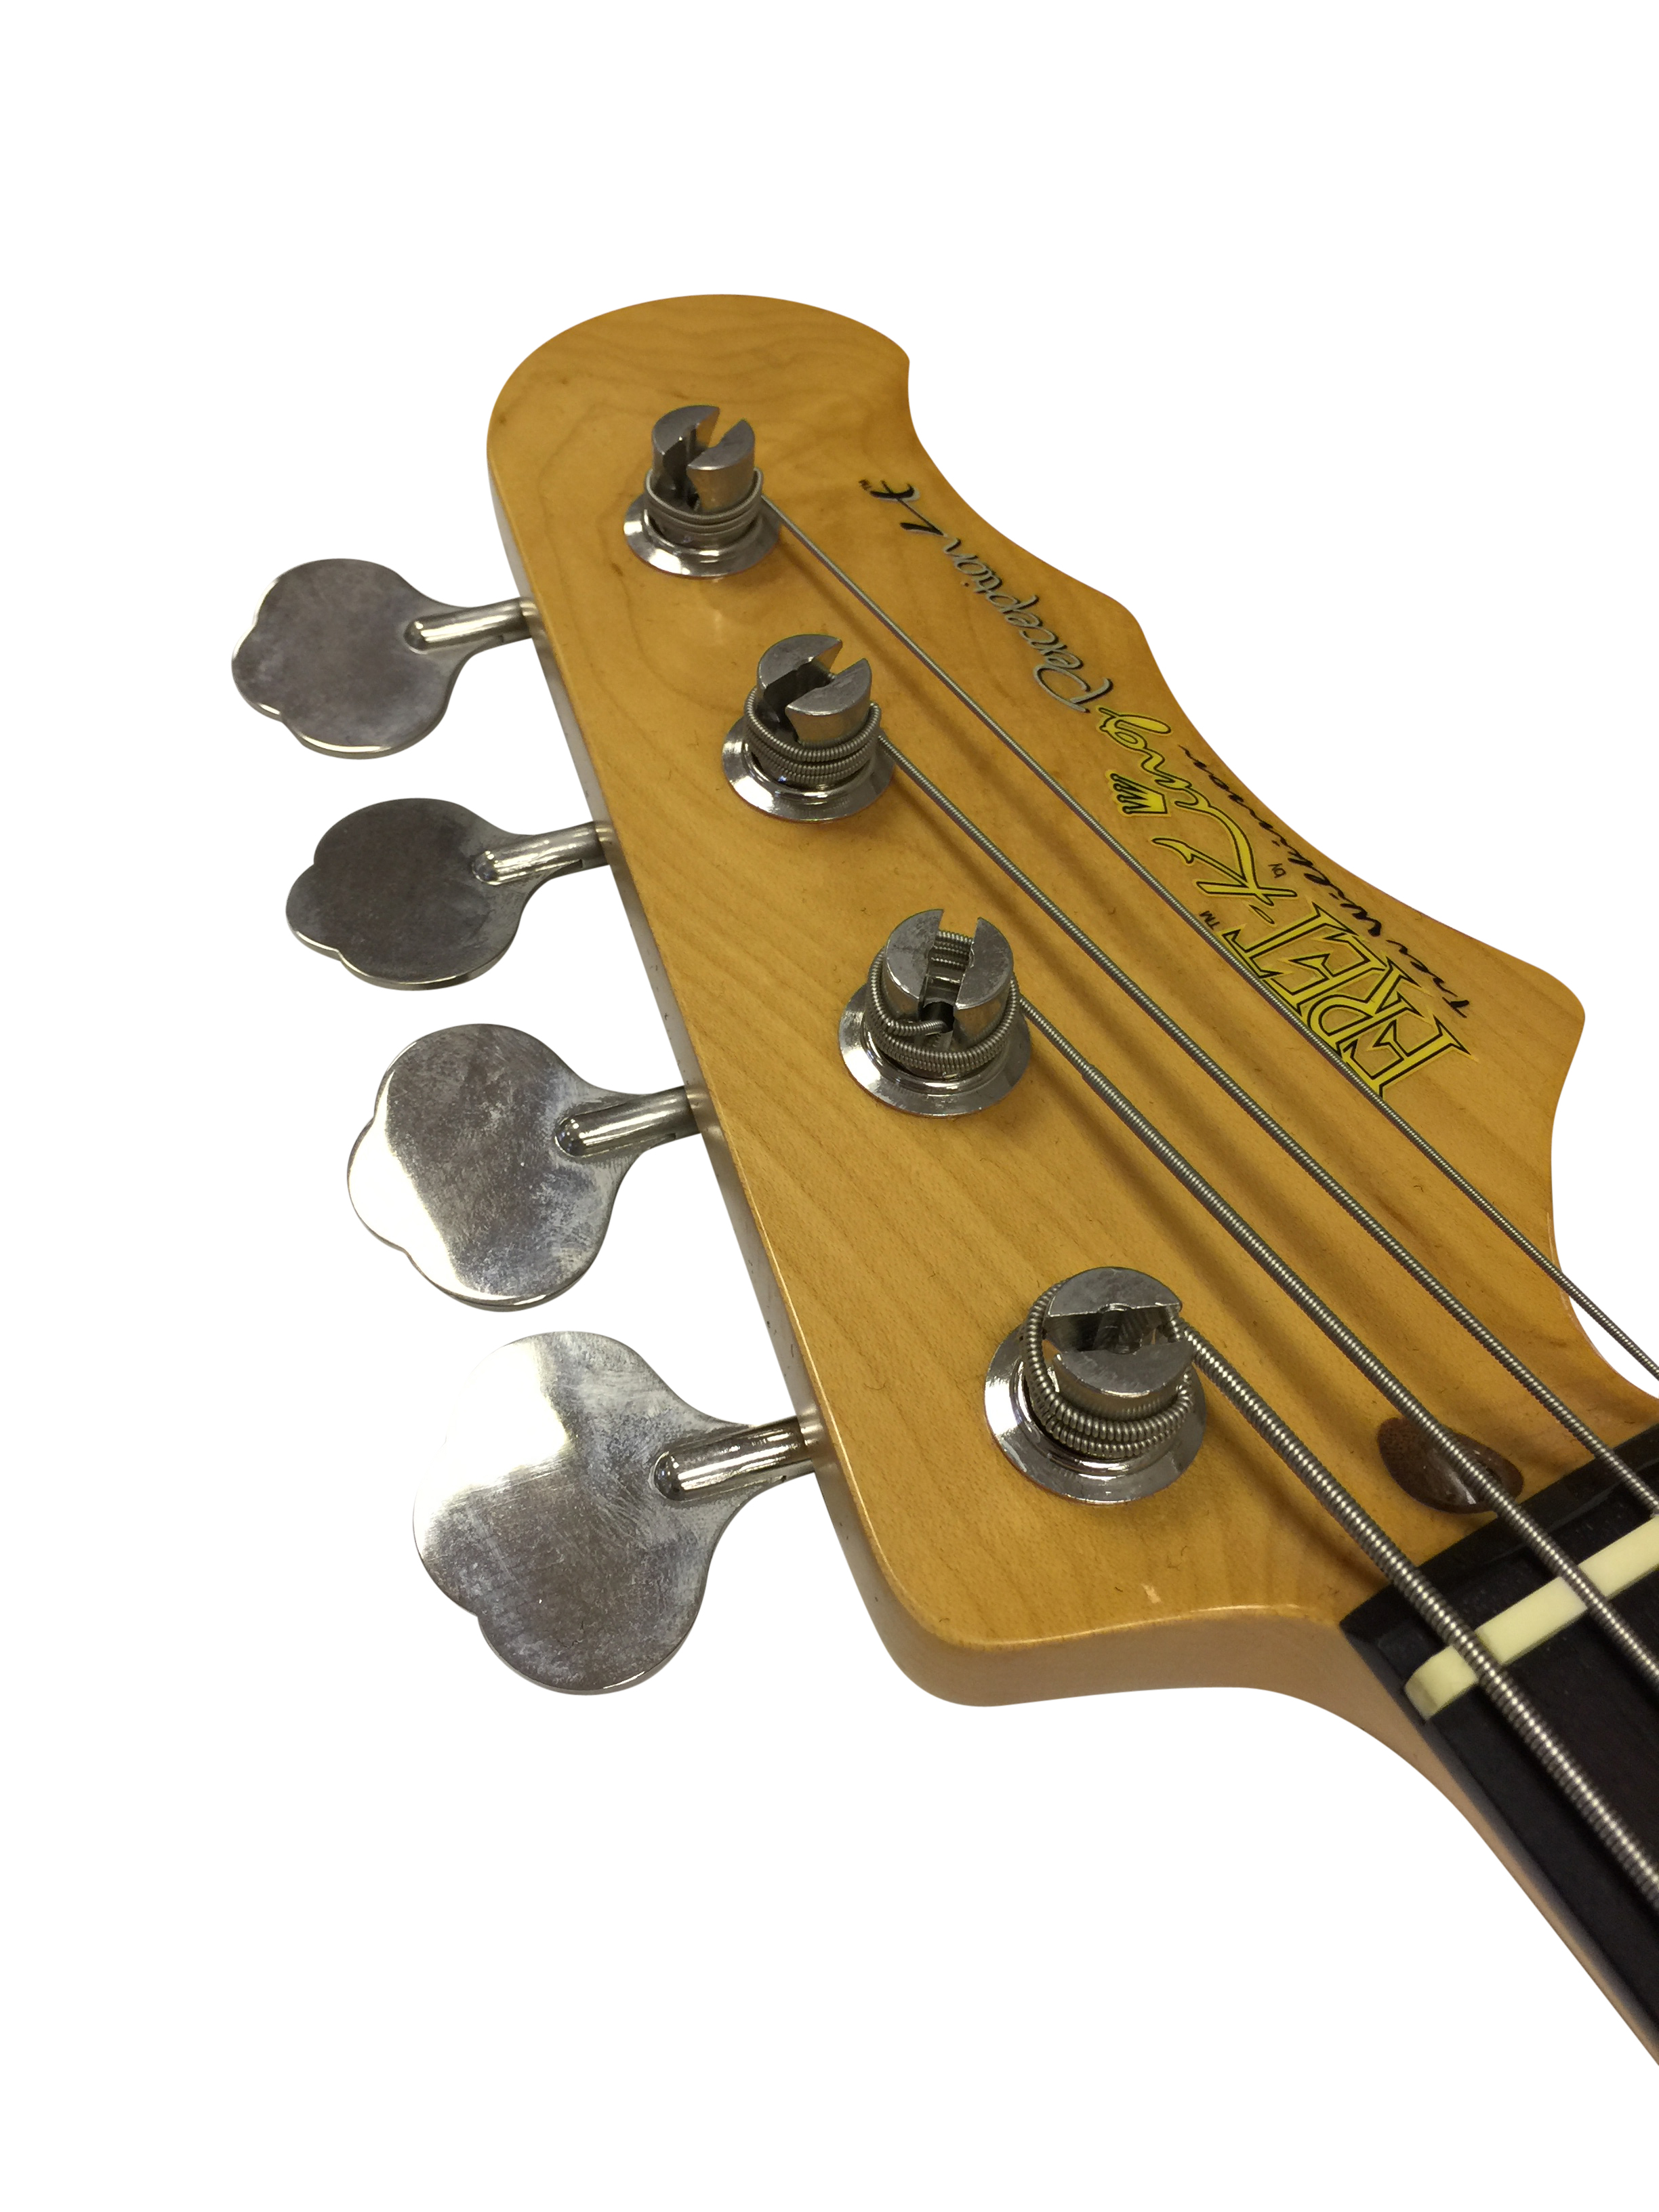 Lot 10 - FRET KING PERCEPTION 4 BASS GUITAR. A Fret King Perception 4 bass guitar. Serial: B00240.